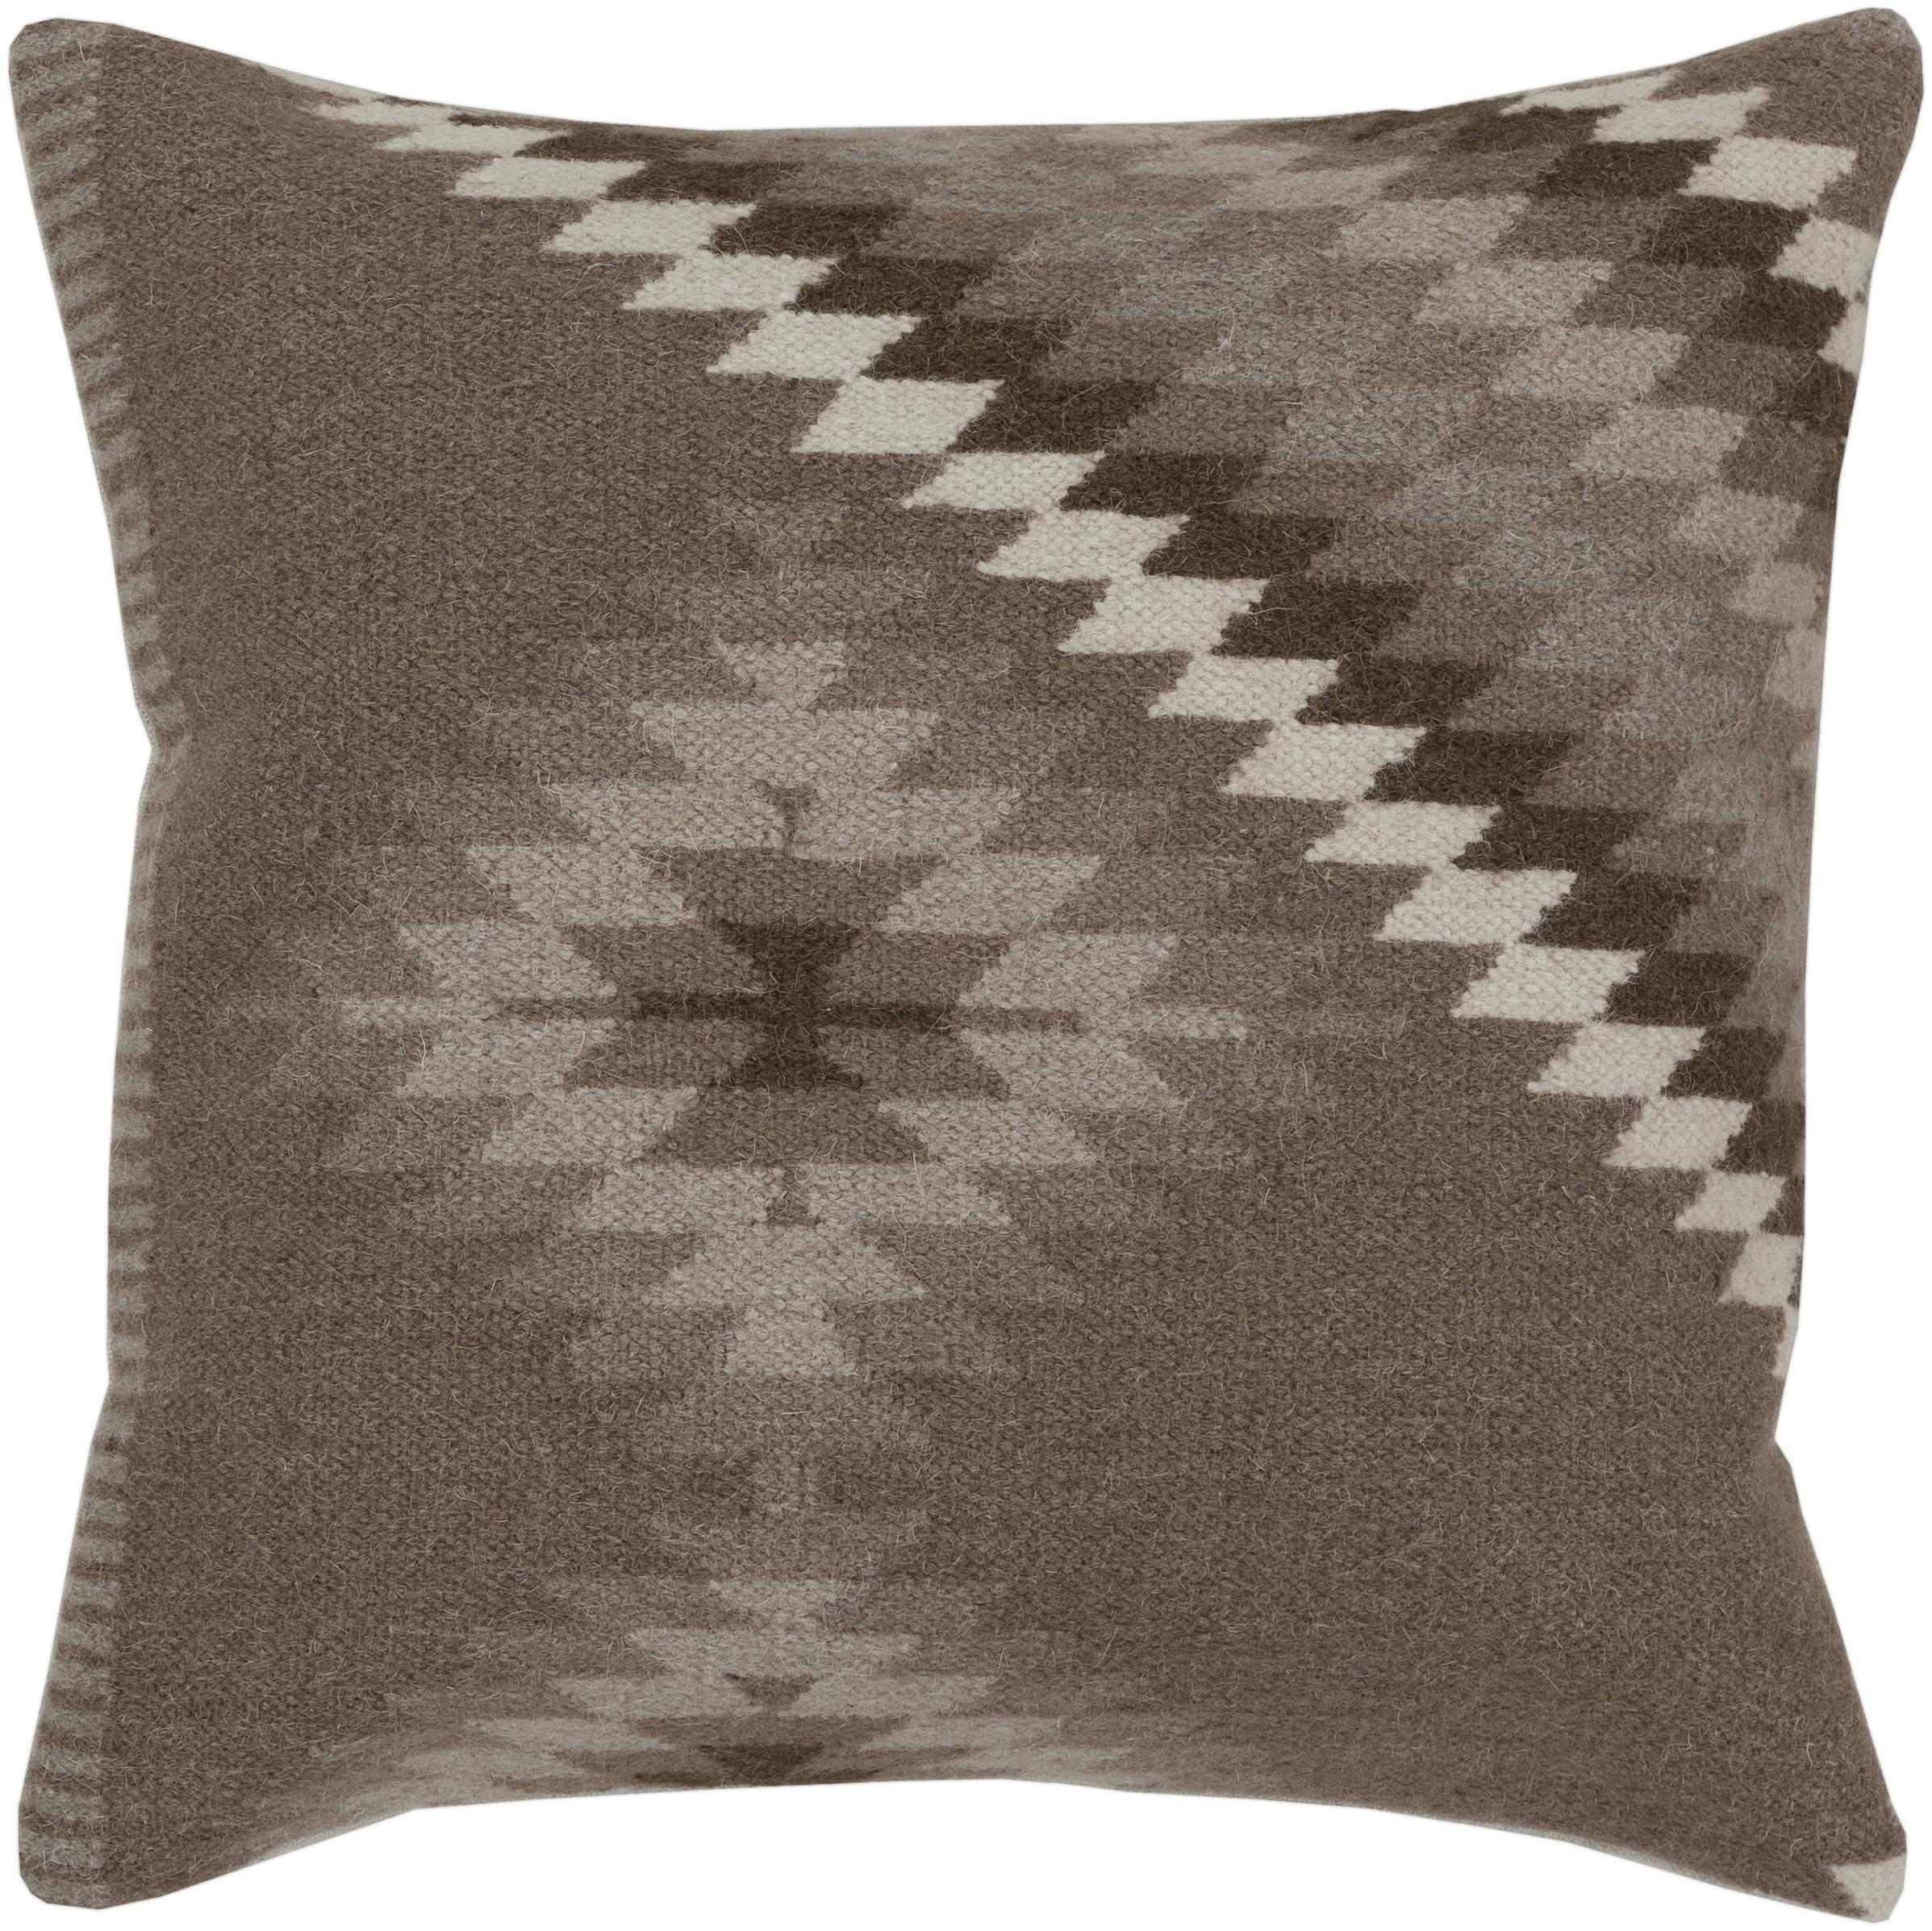 "Surya Rugs Pillows 18"" x 18"" Pillow - Item Number: LD038-1818P"